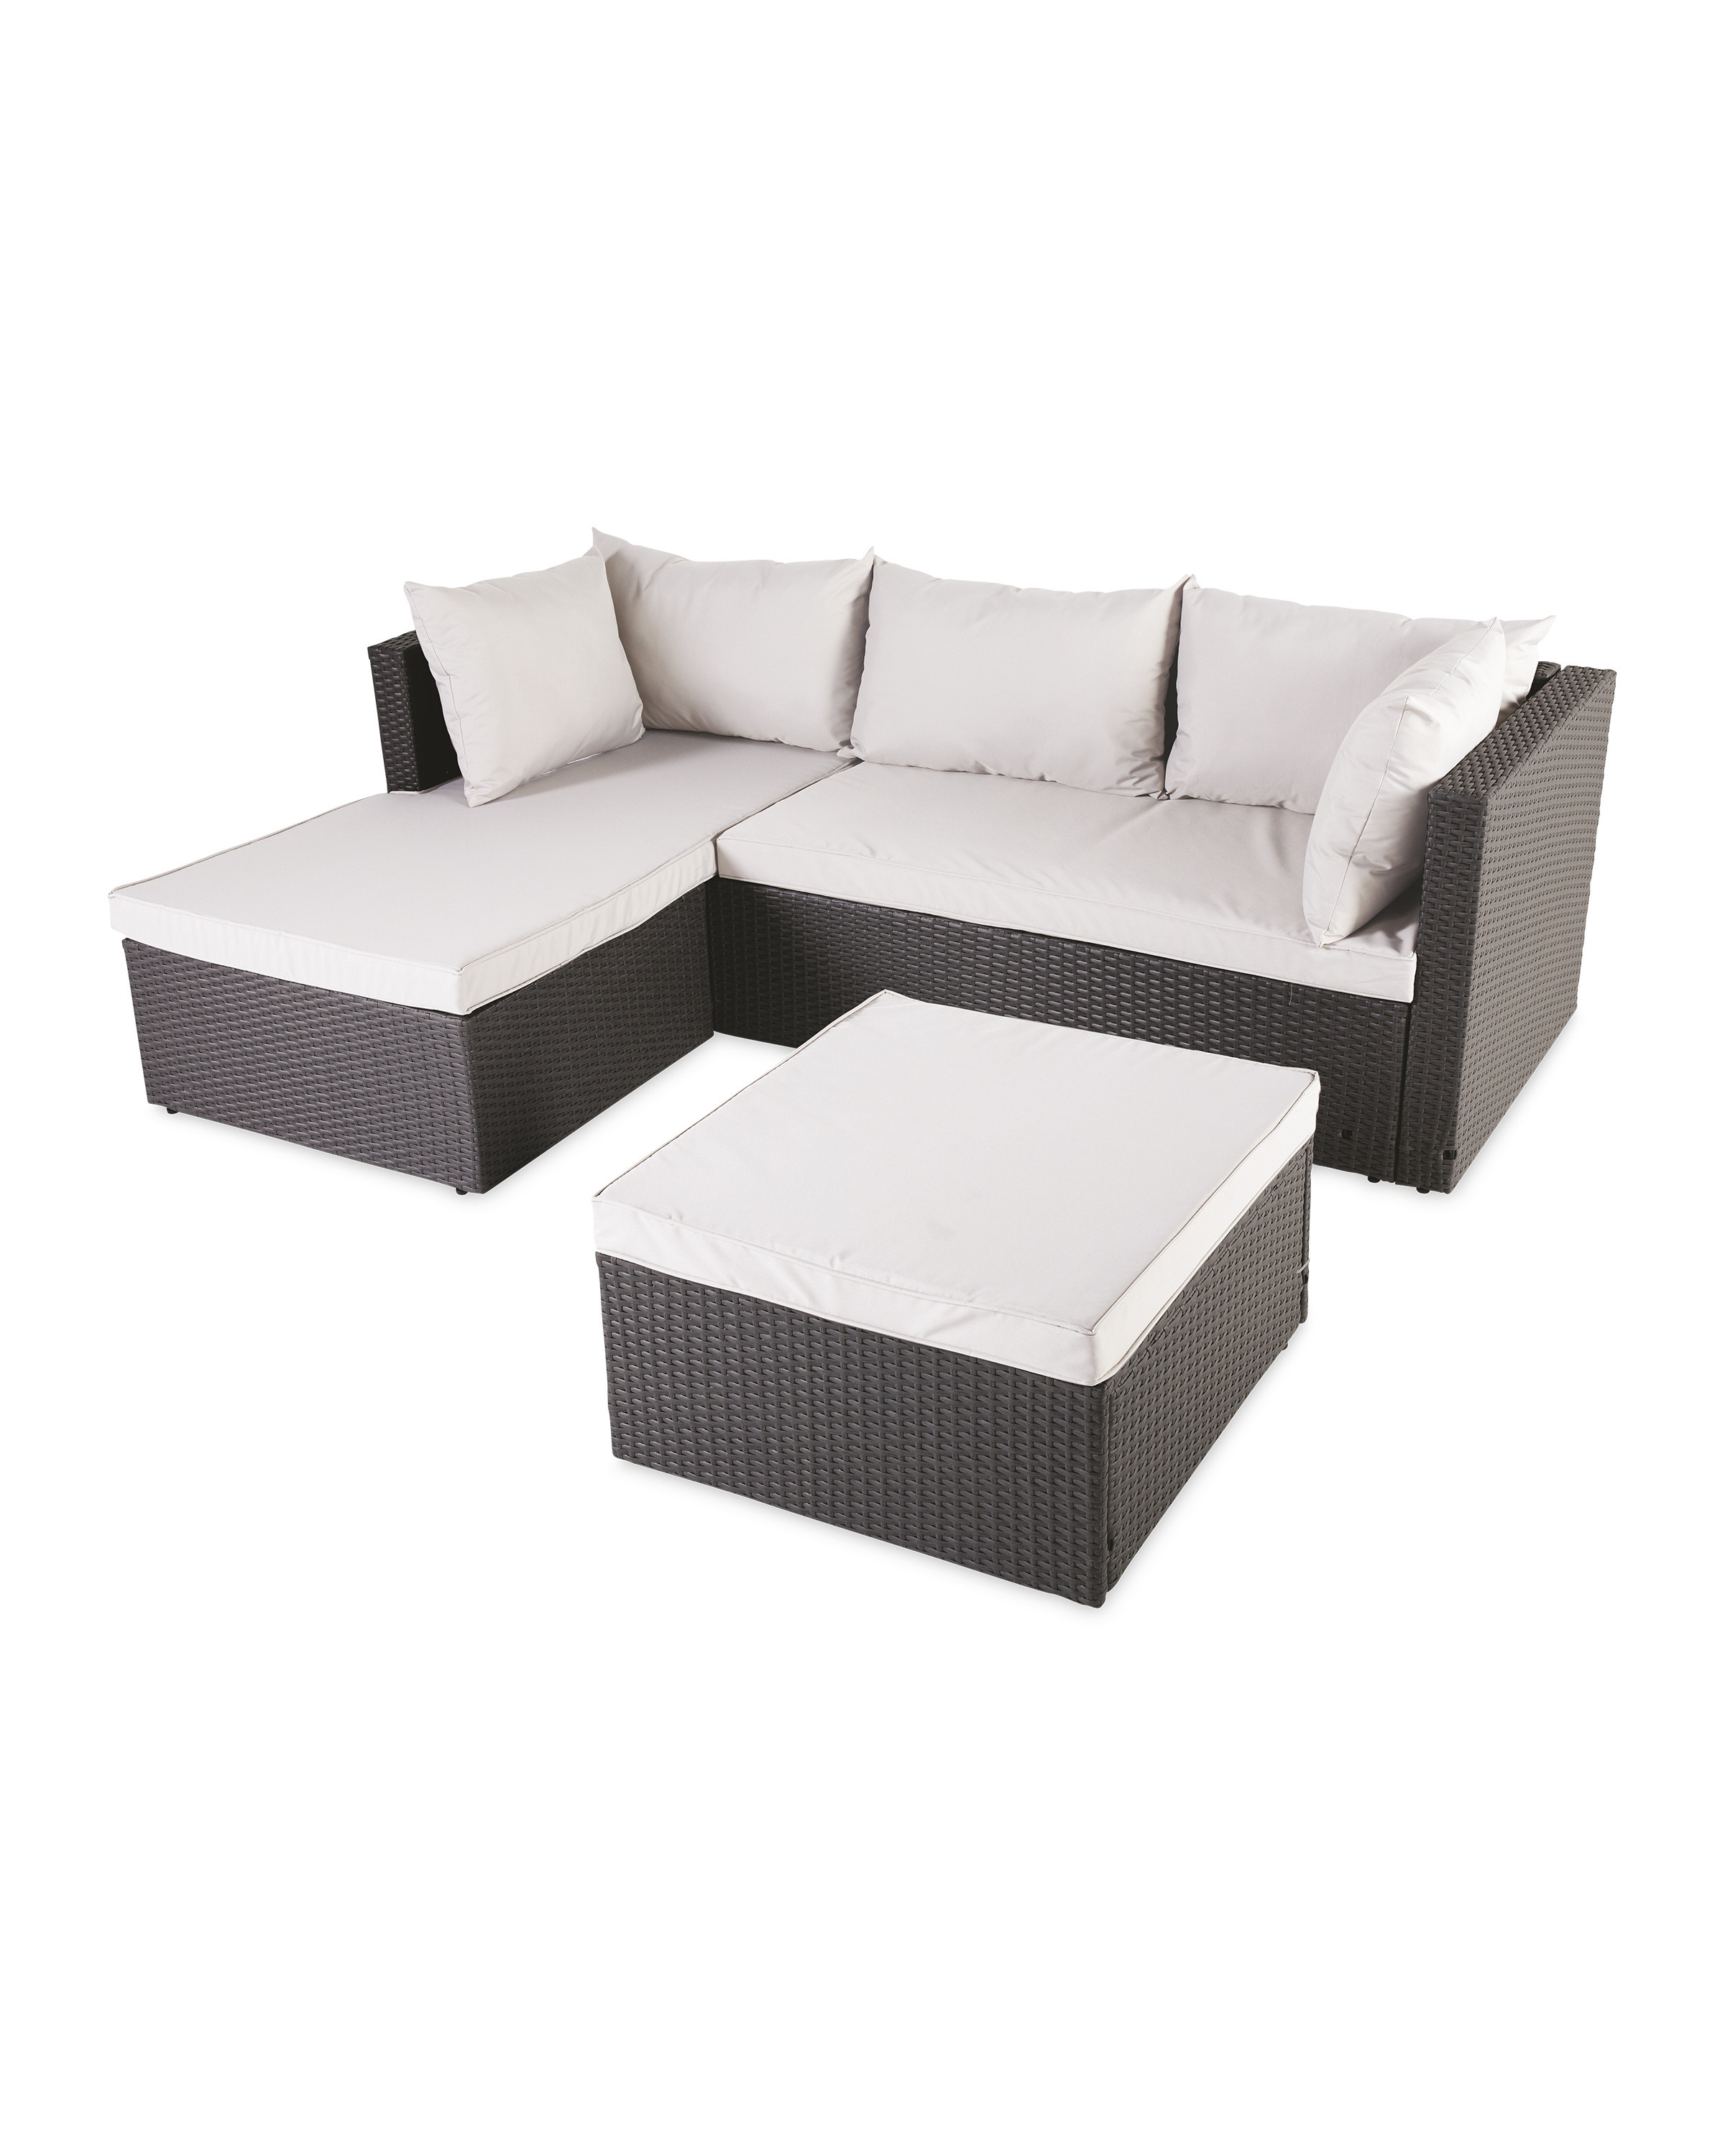 Rattan Effect Anthracite Corner Sofa 2020 Aldi Uk